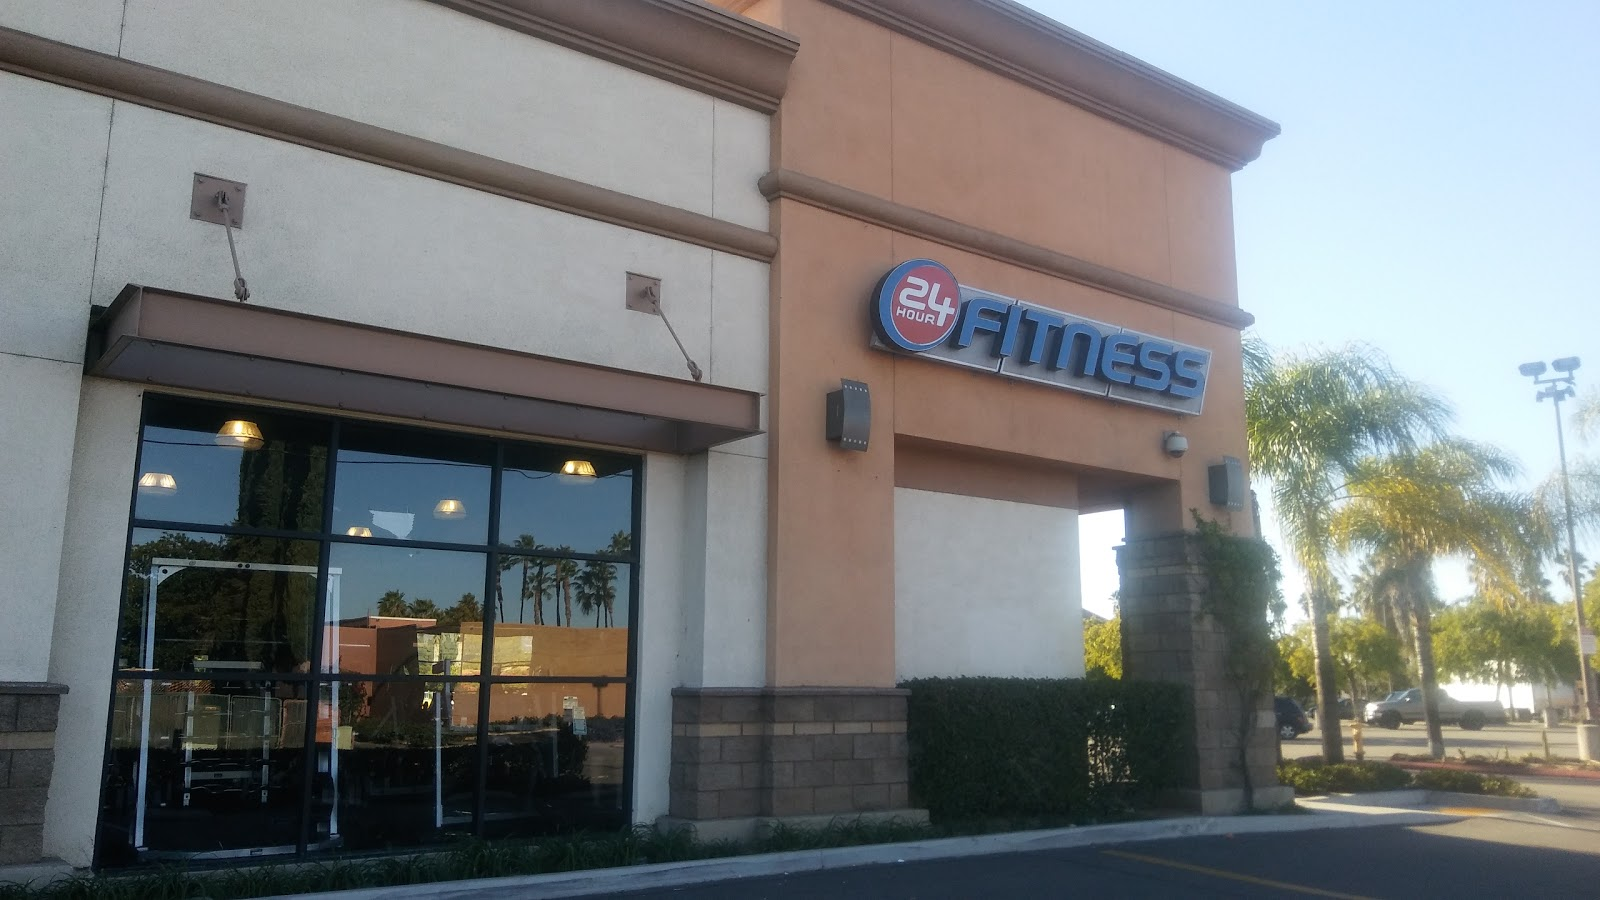 24 Hour Fitness - photo